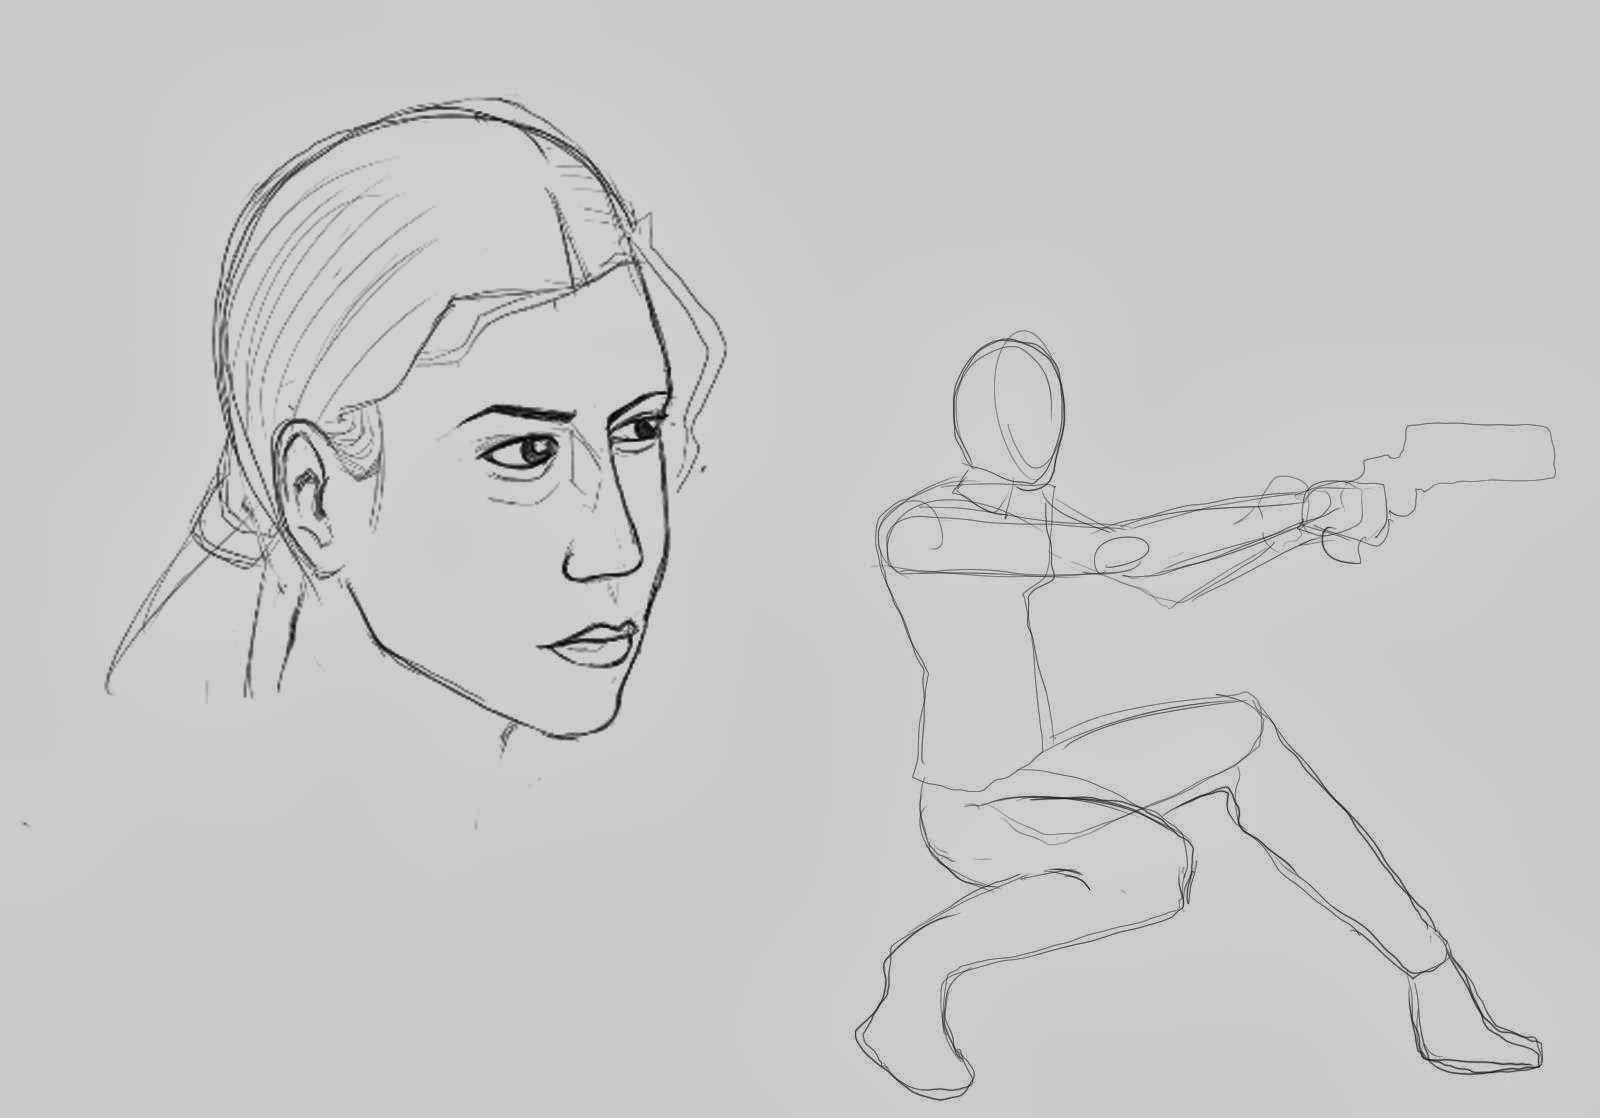 207c29a7a87b1 Pose and face sketches I made using this photo as a reference